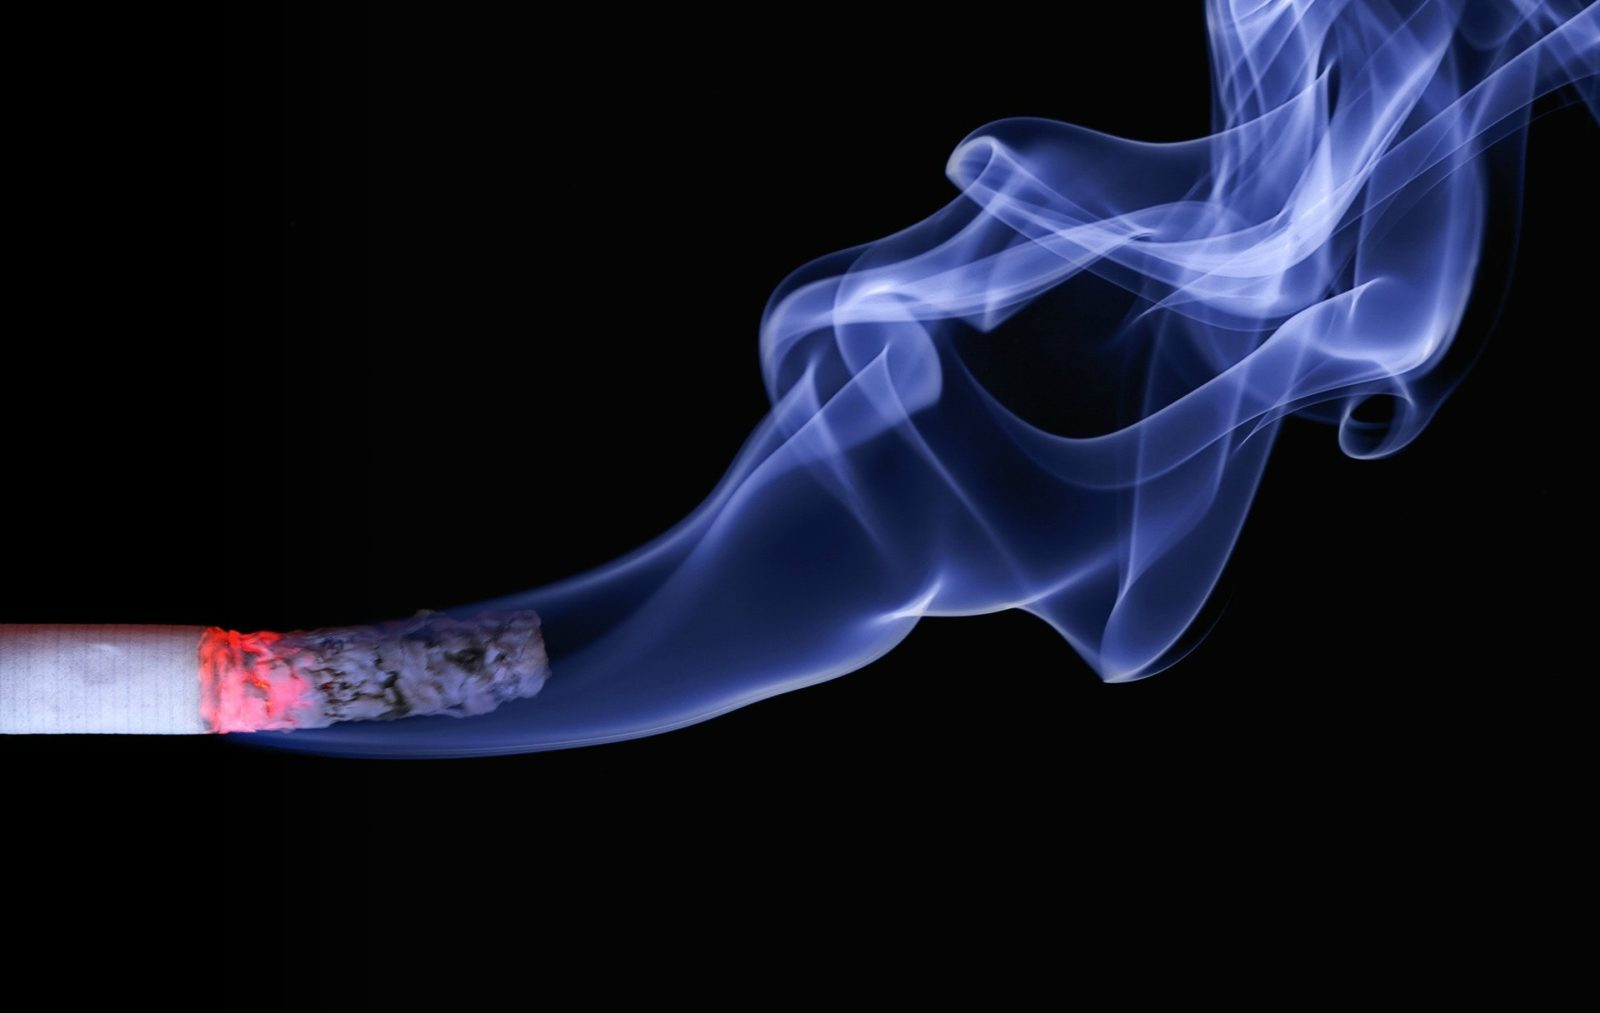 It's never too late to quit smoking and improve heart health.